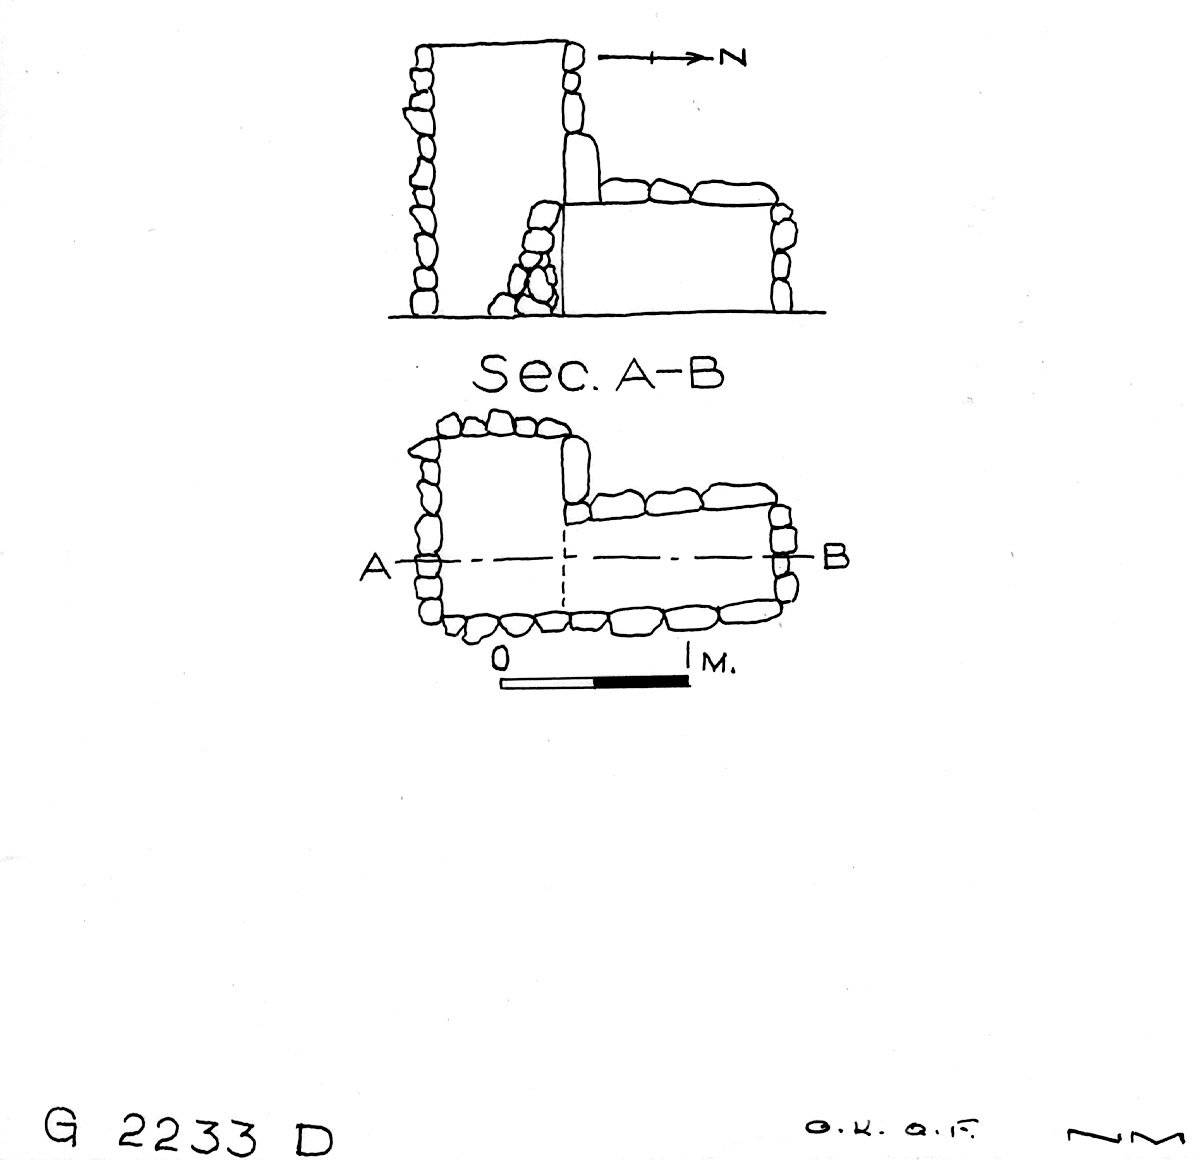 Maps and plans: G 2233, Shaft D